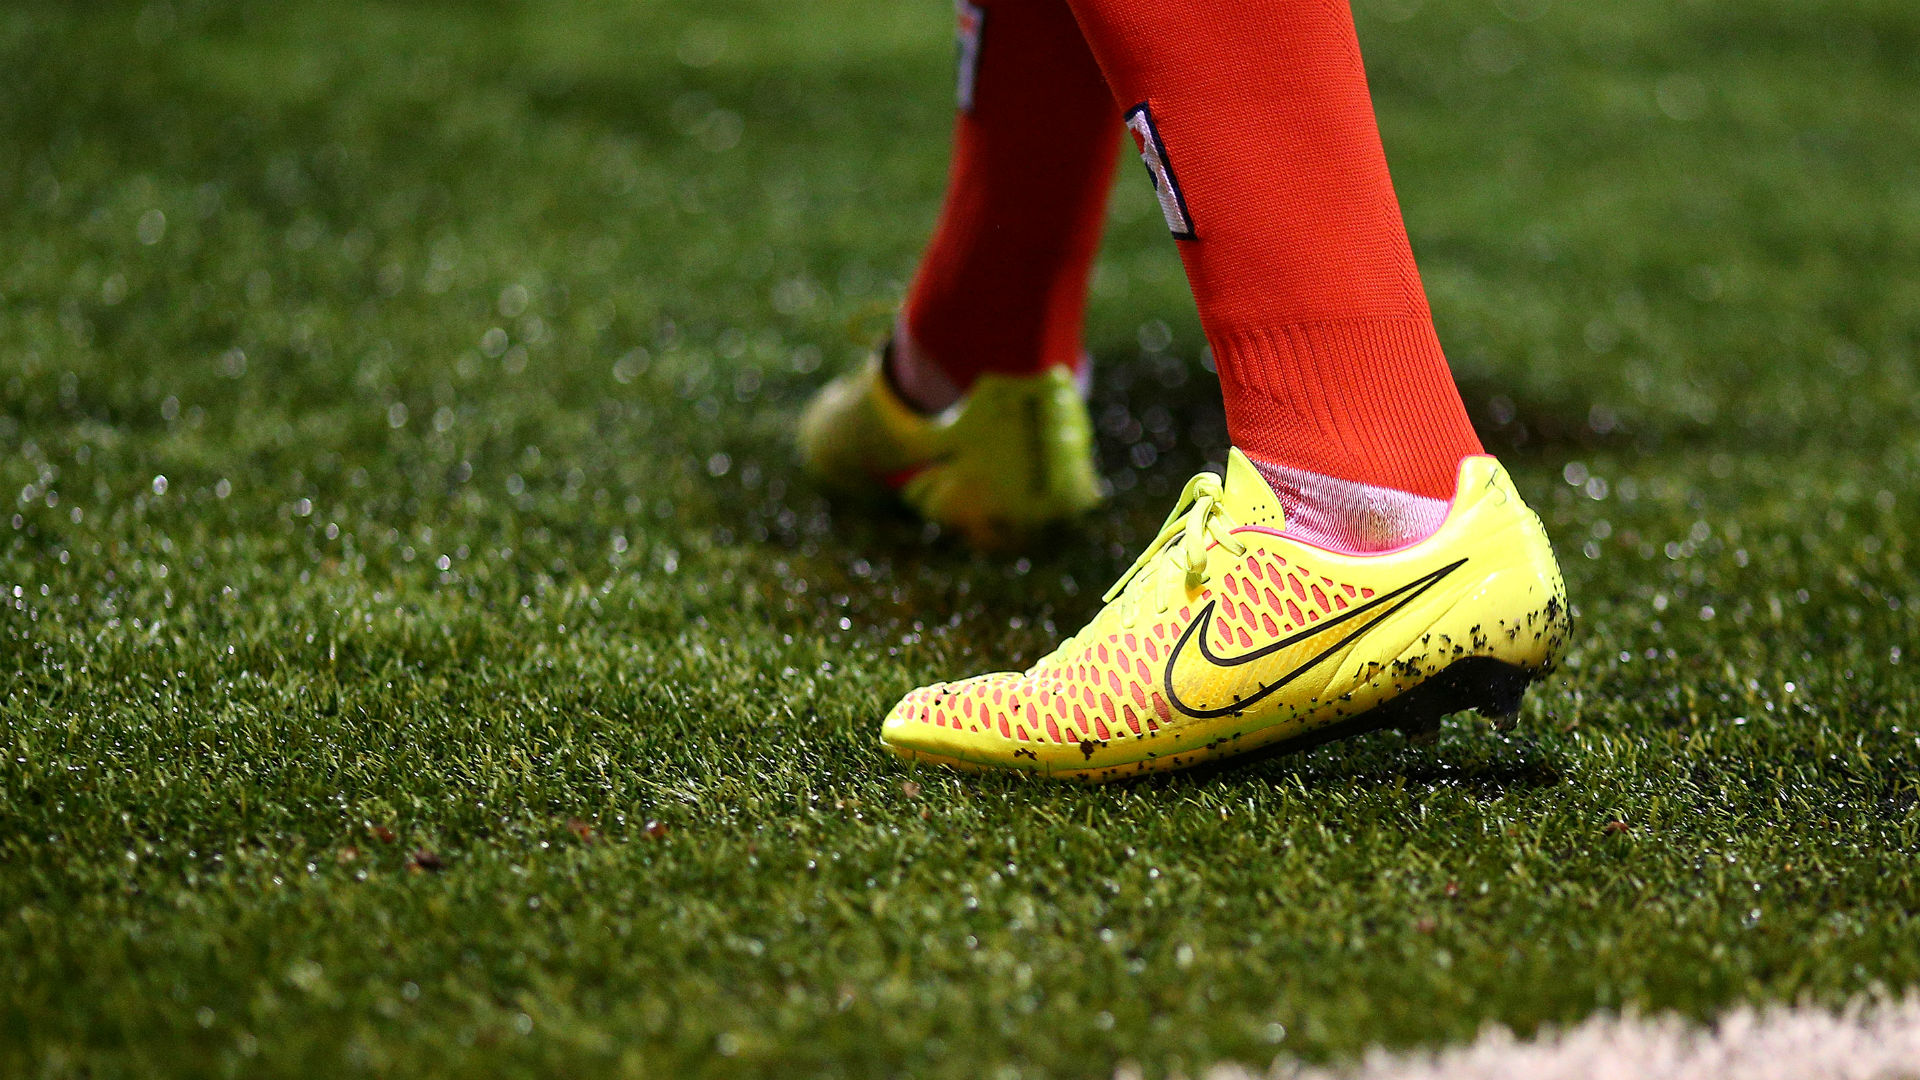 Football boots astro turf general view